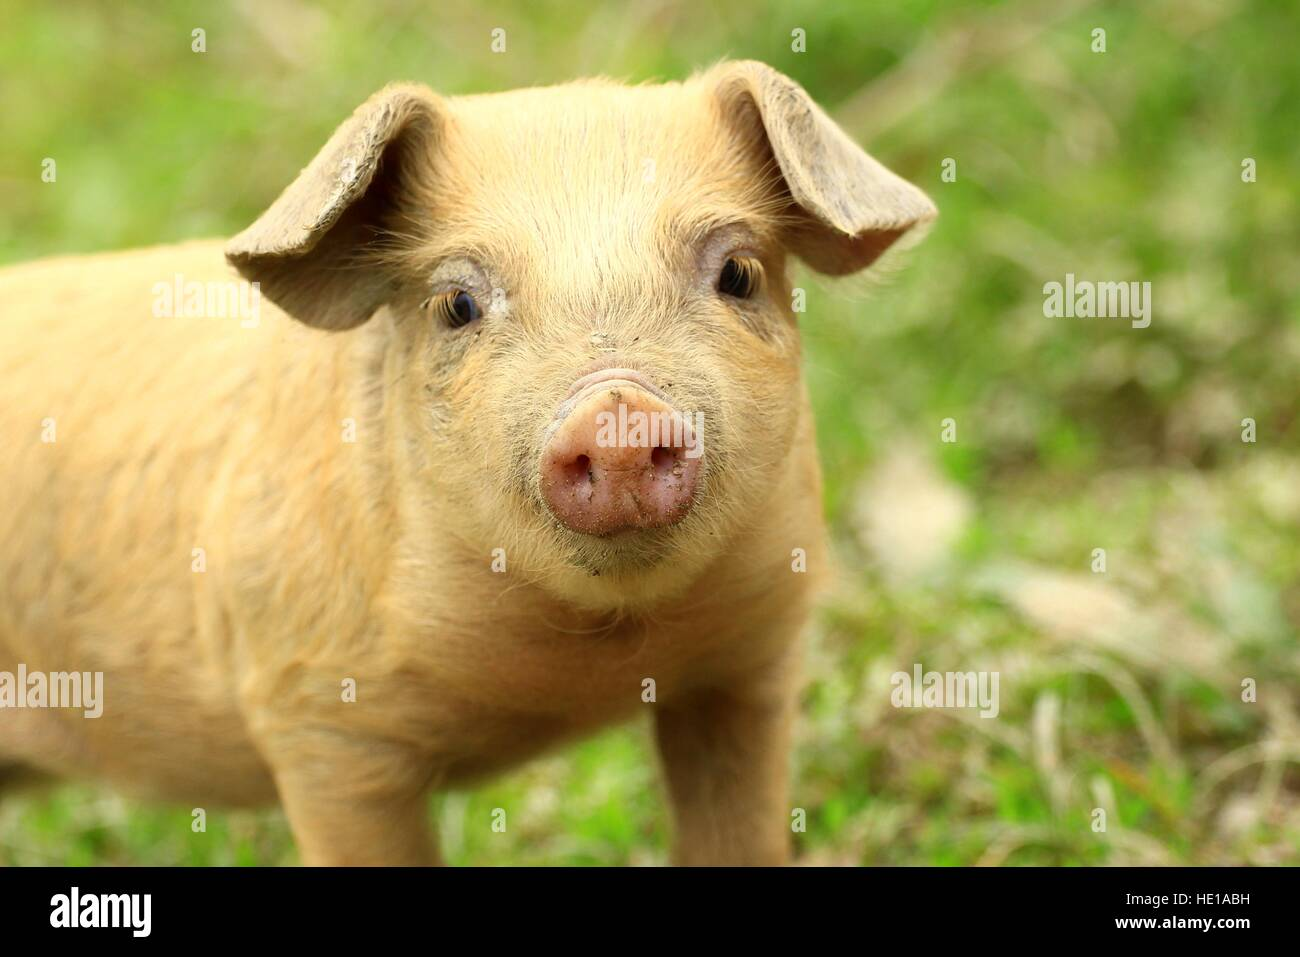 Cute piglet face - Stock Image